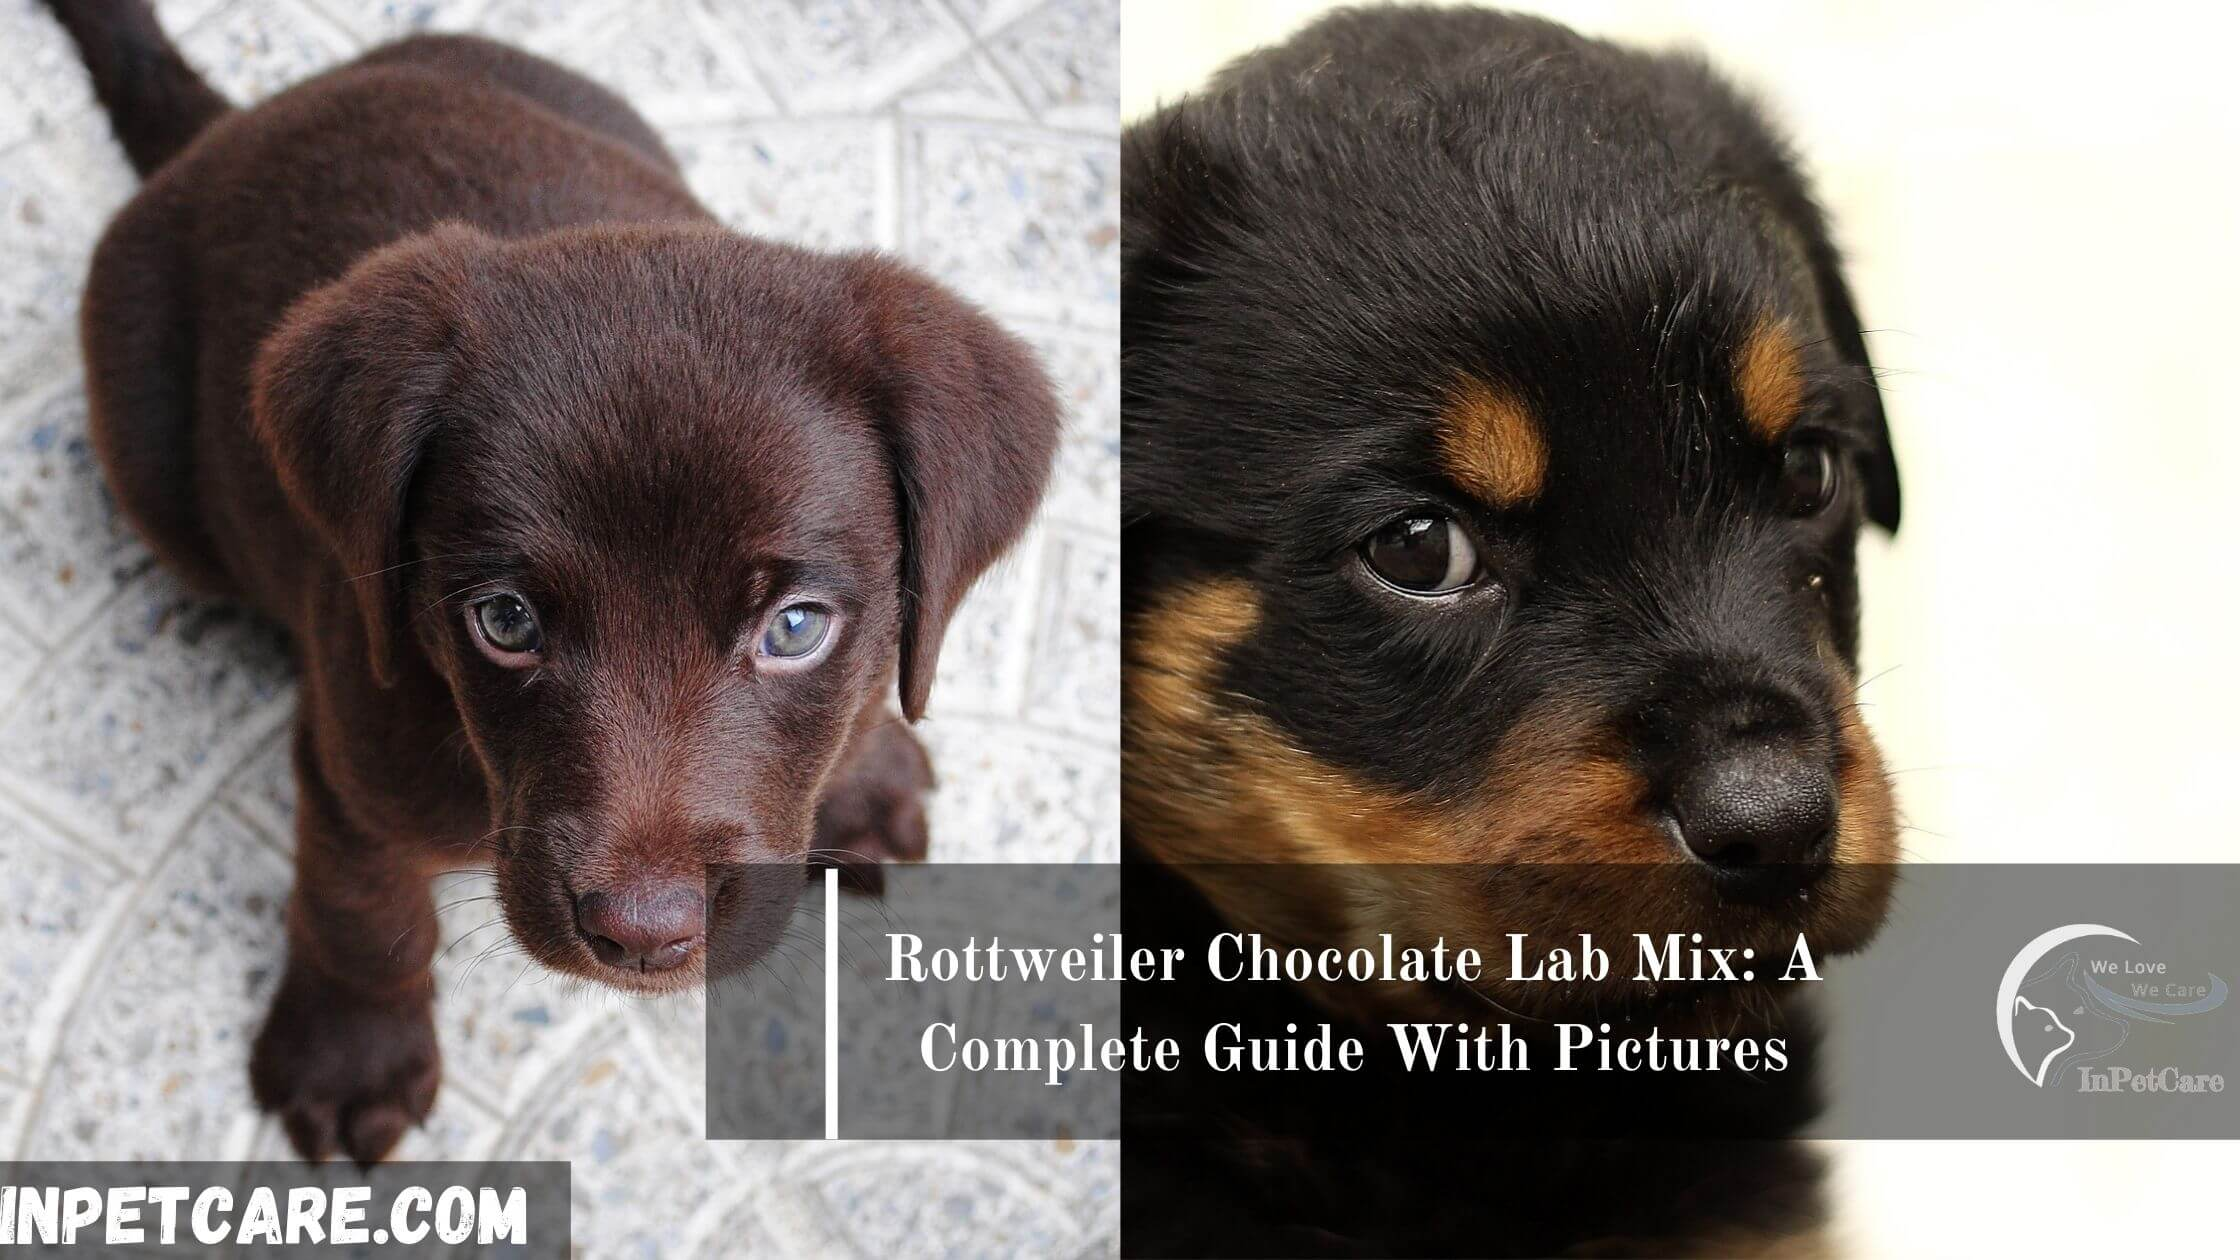 Rottweiler Chocolate Lab Mix, Chocolate Lab Rottweiler Mix, Chocolate Lab Mix with Rottweiler